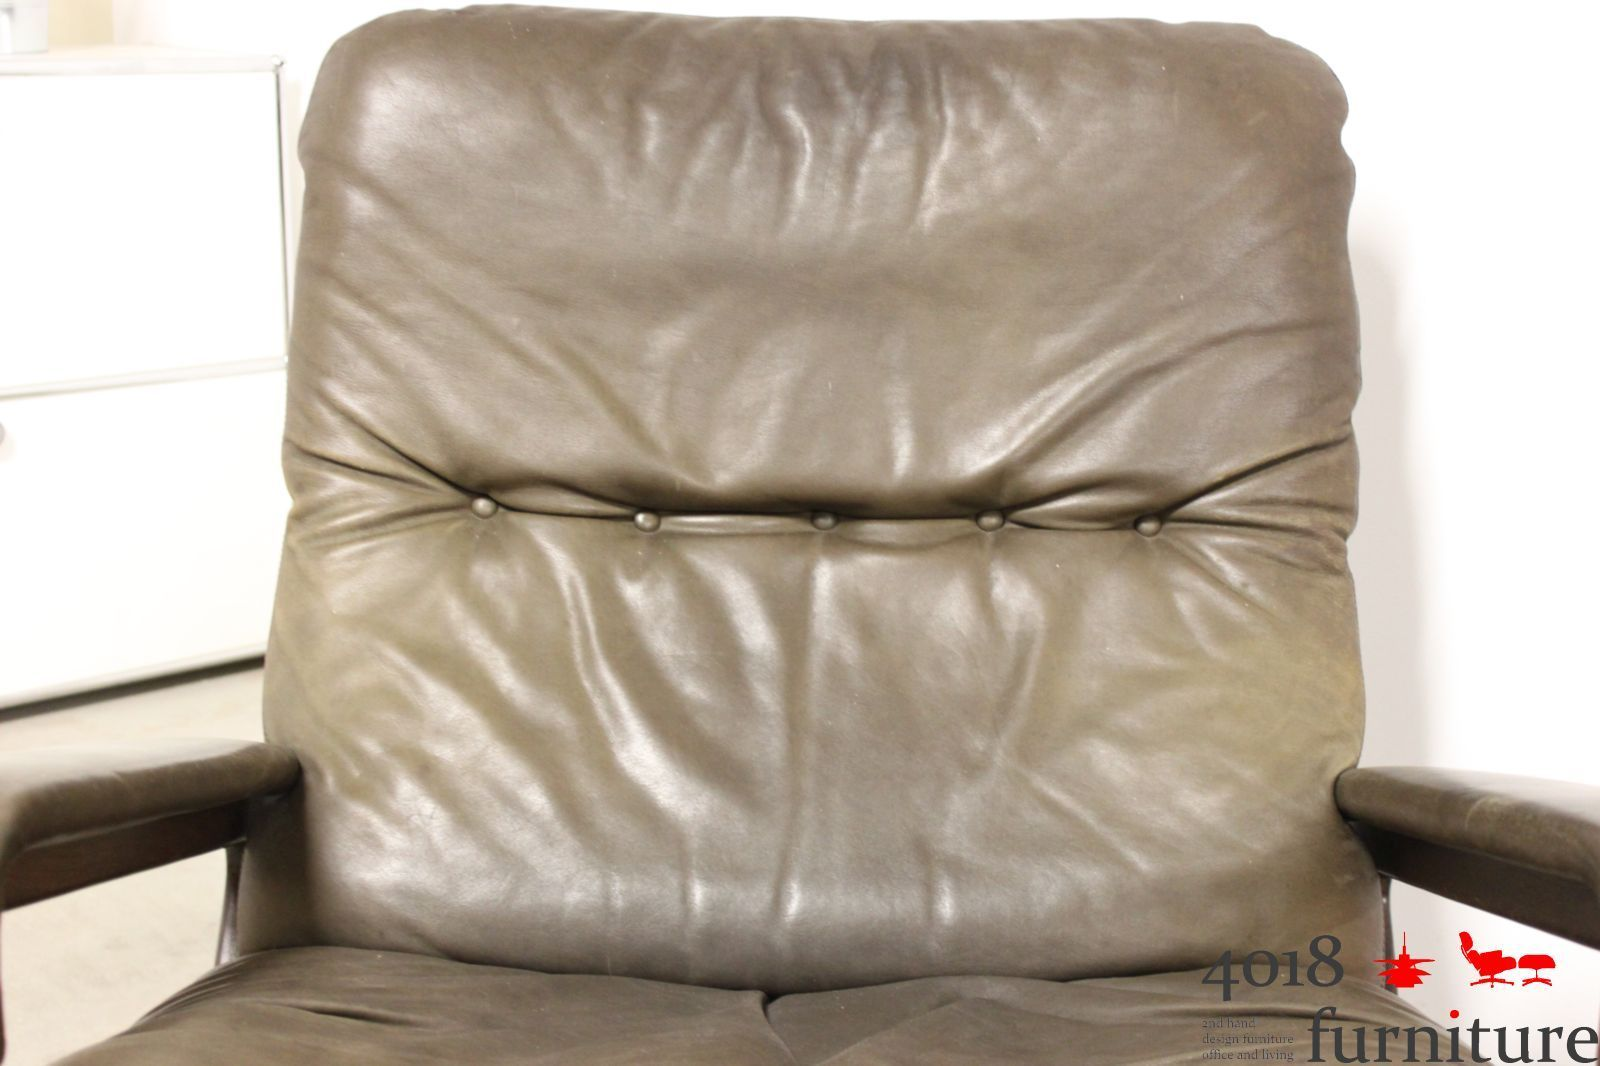 King Chair Sessel Strässle King Chair King Pouf Andre Vandenbreuck Lounge Sessel